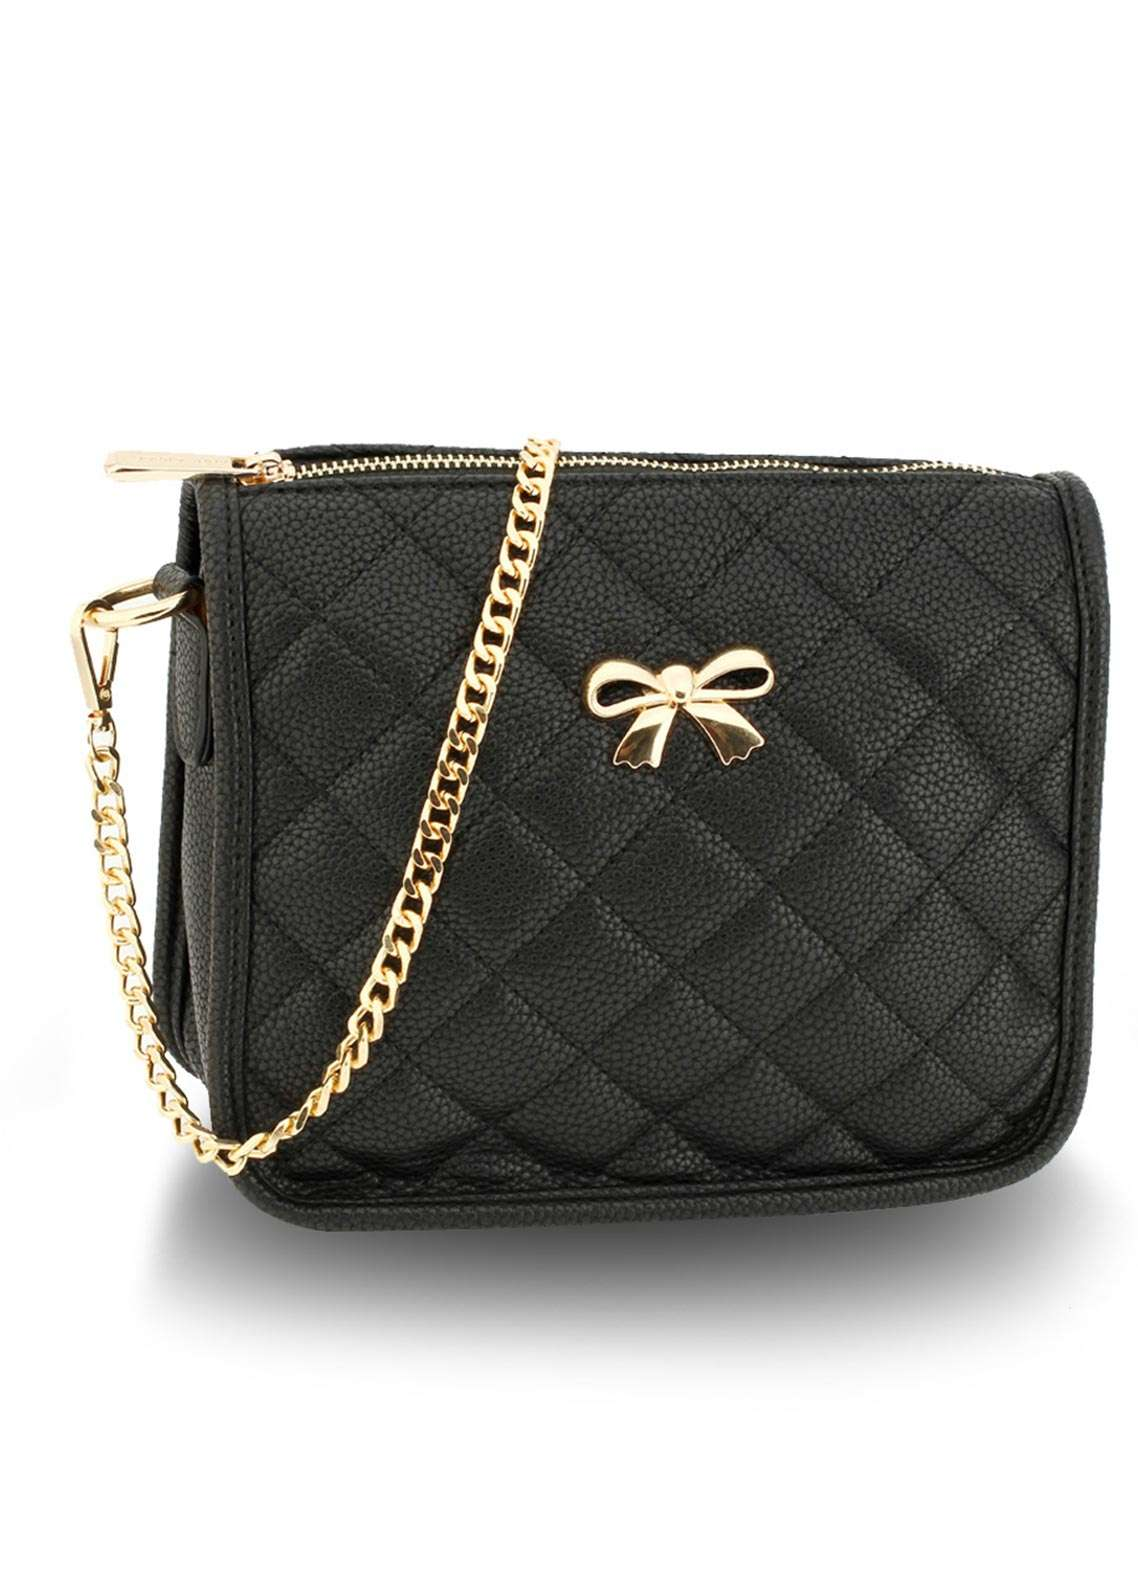 Anna Grace London Faux Leather Crossbody  Bags  for Women  Black with Quilted Texture